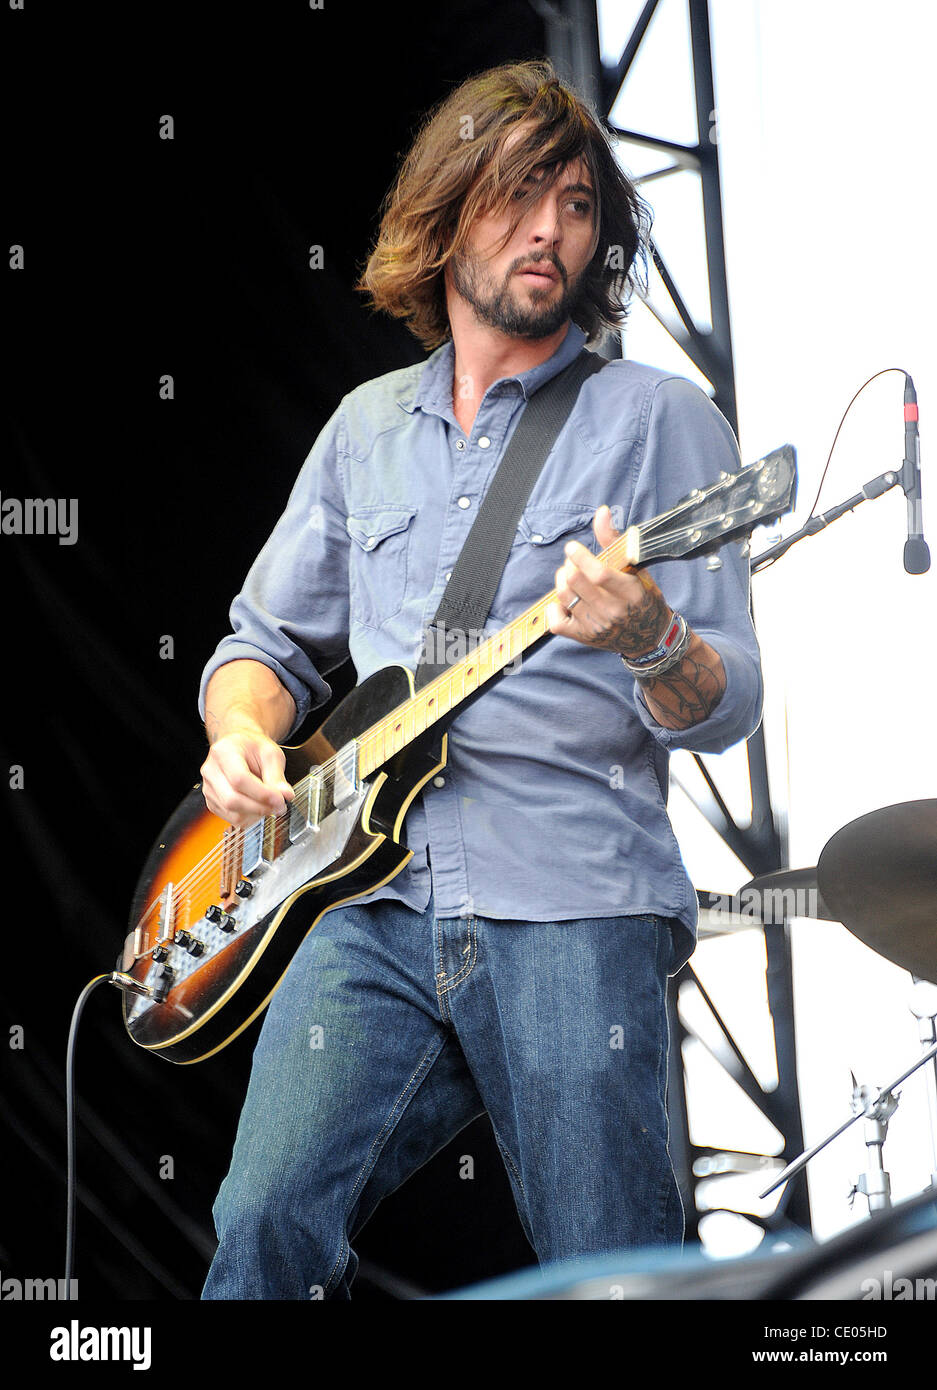 Aug 7, 2011 - Chicago, Illinois; USA - Musician RYAN BINGHAM & THE DEAD HORSES performs live as part of the - Stock Image